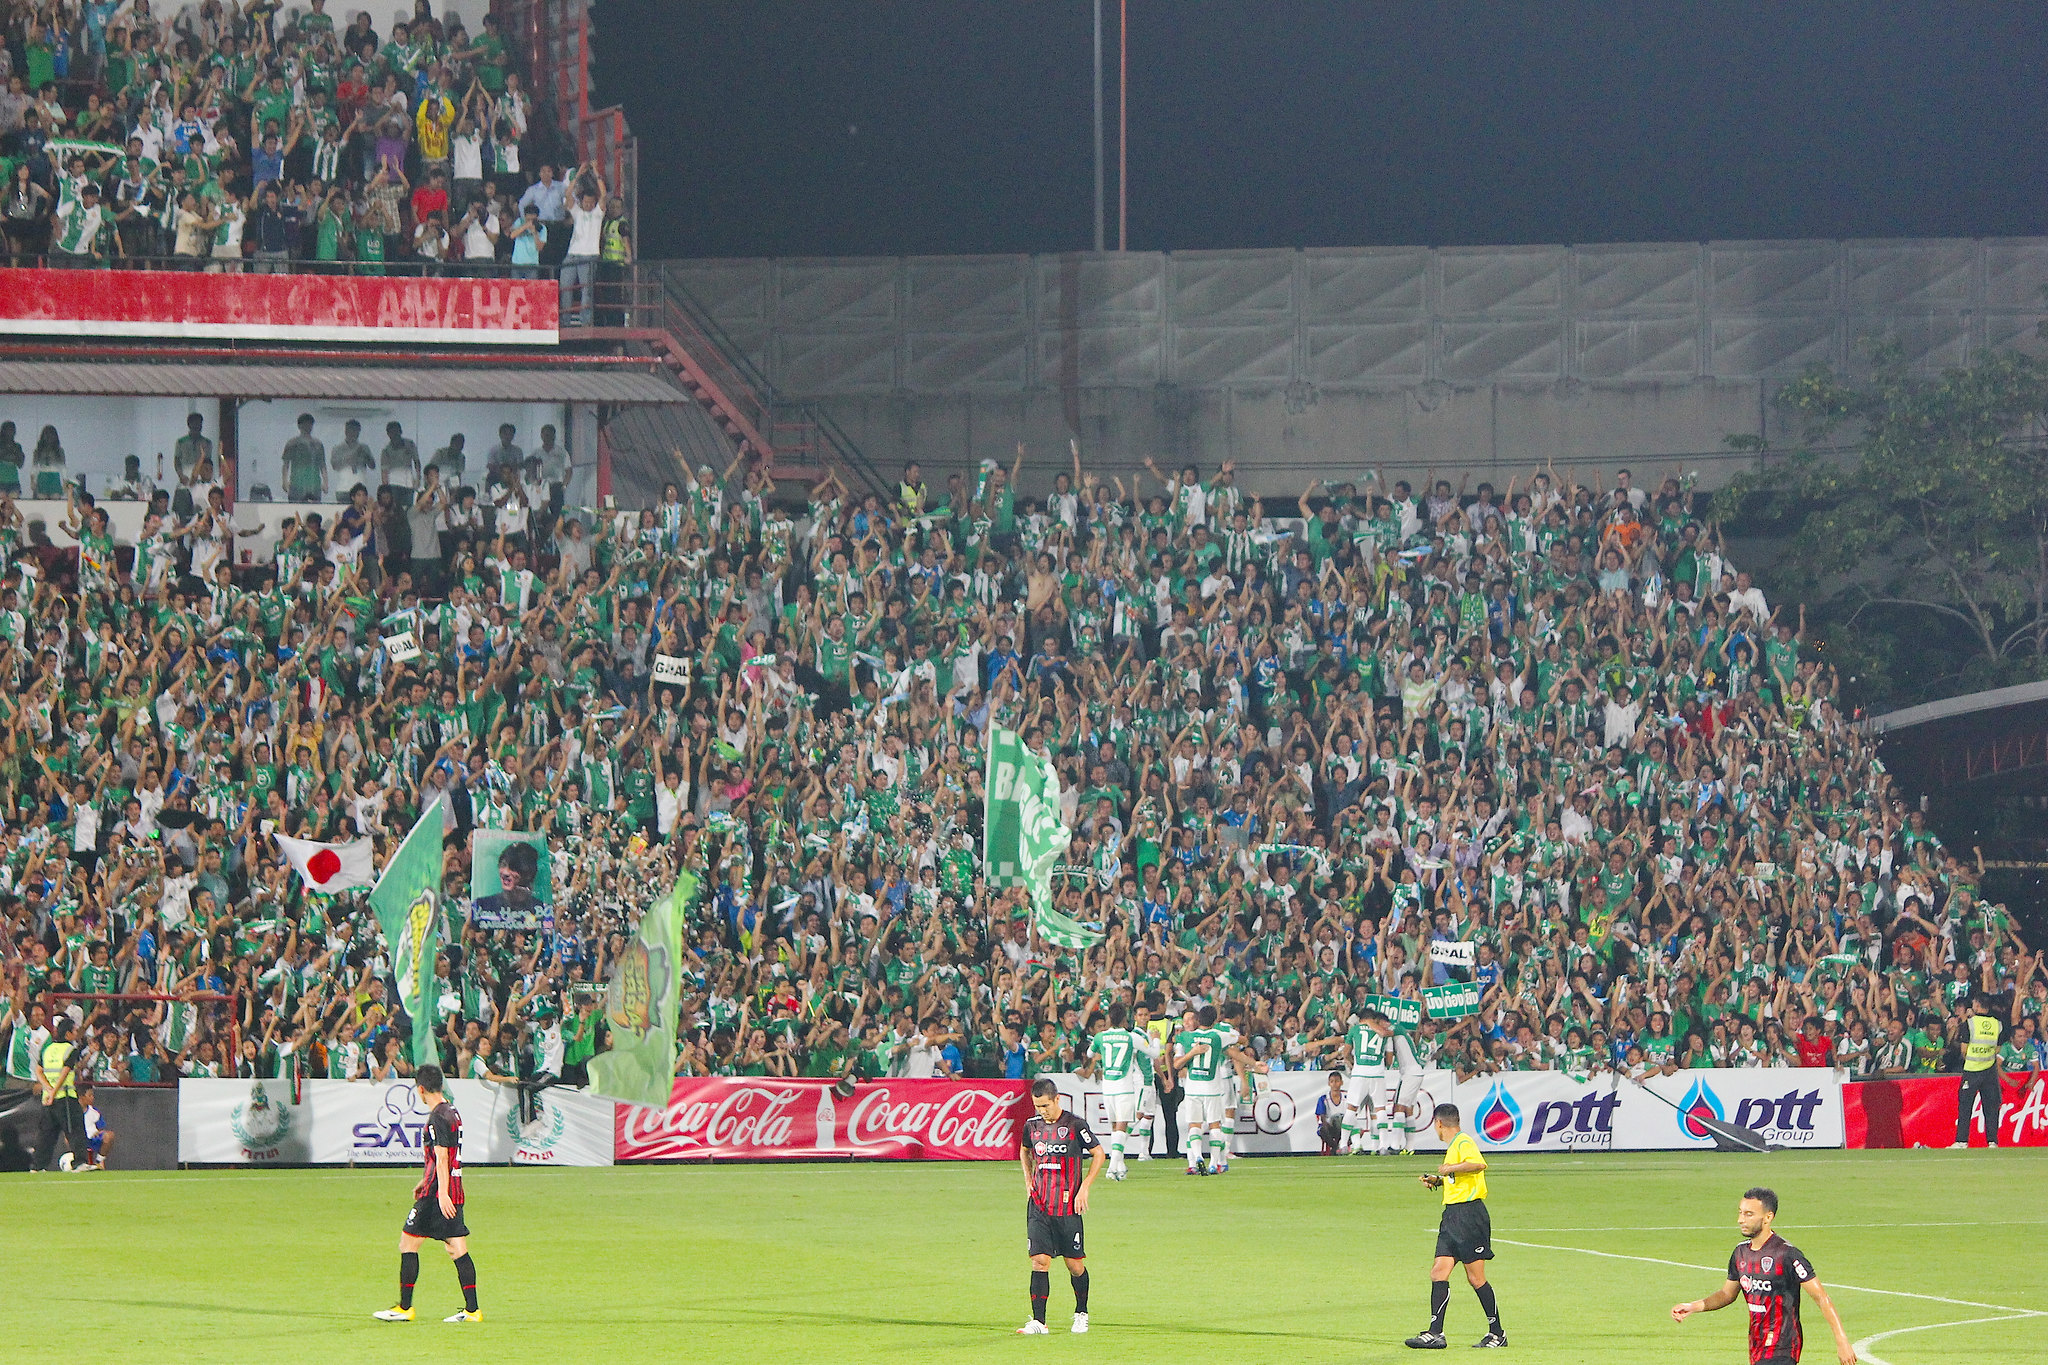 Bangkok Glass supporters